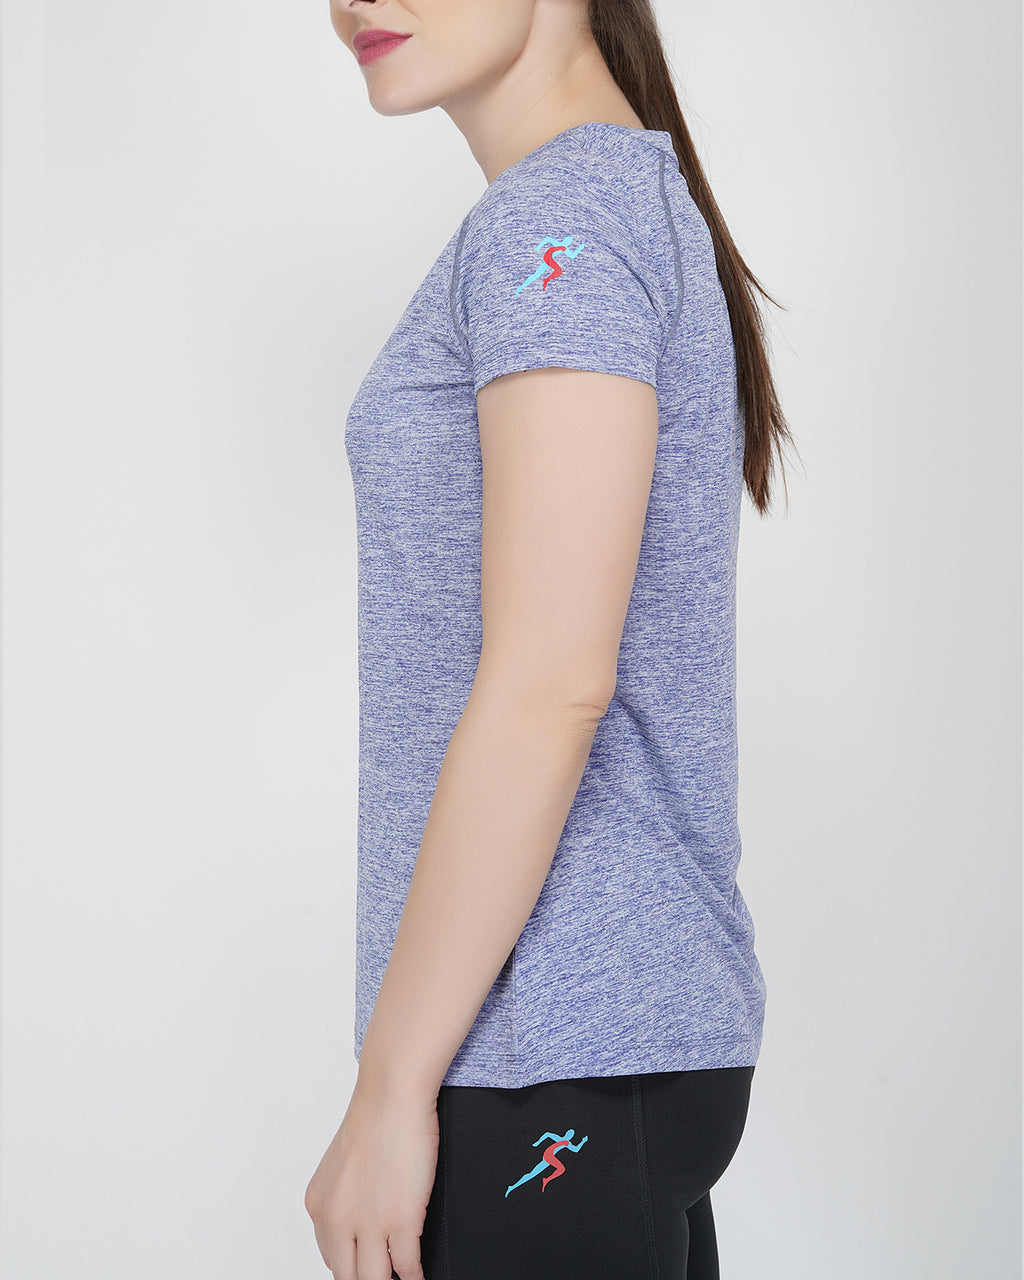 Trim Raglan Gym T-Shirt For Gym - Blue Melange